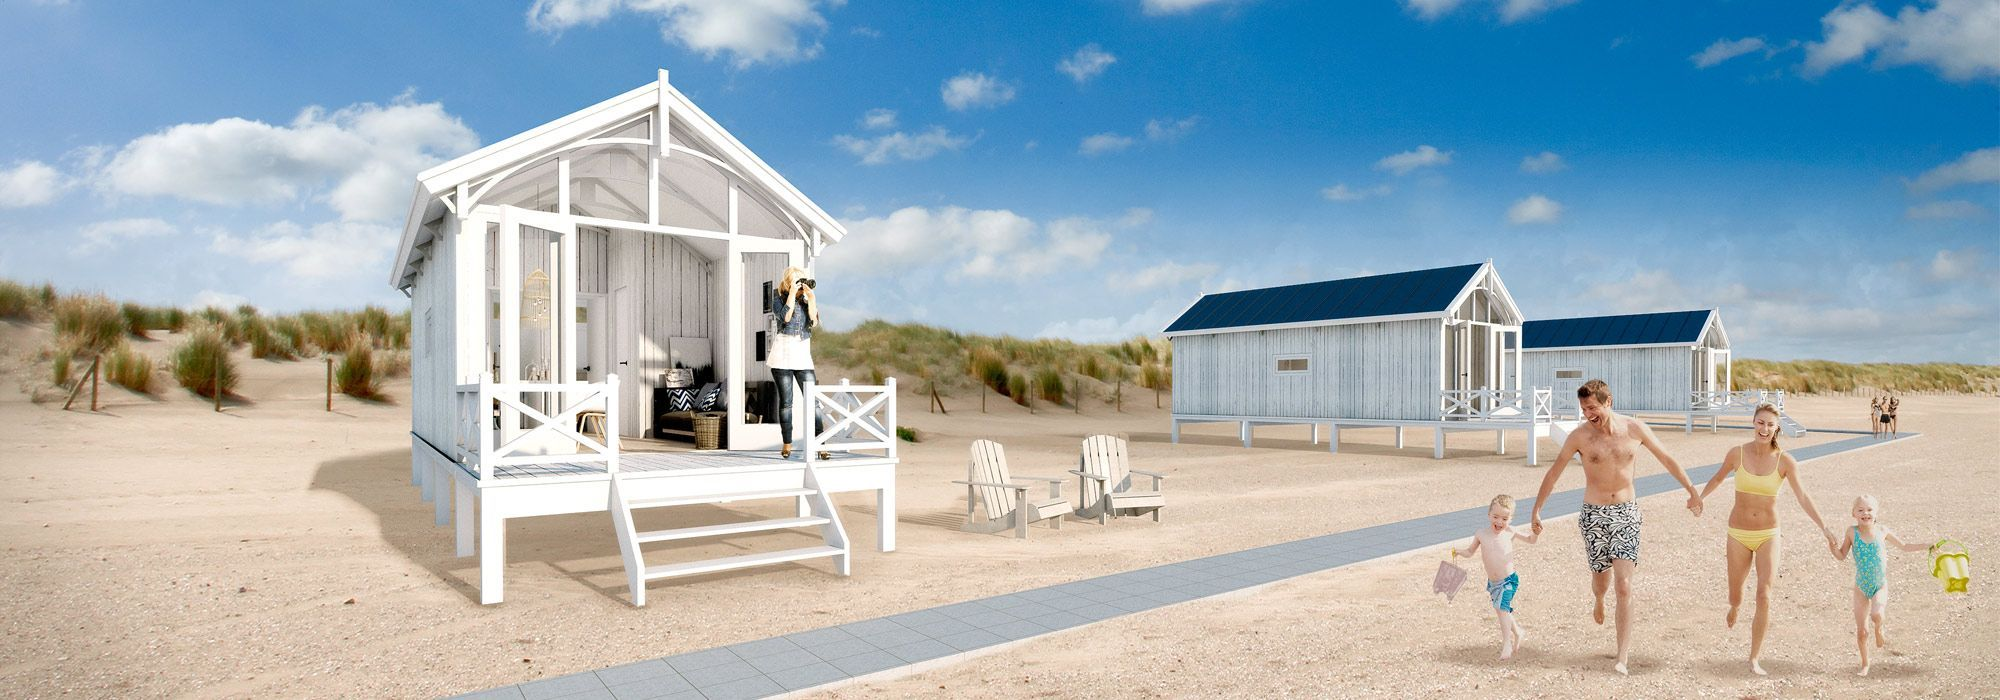 aufwachen am strand von den haag in holland jetzt k nnen sie ein strandhaus mieten urlaub. Black Bedroom Furniture Sets. Home Design Ideas